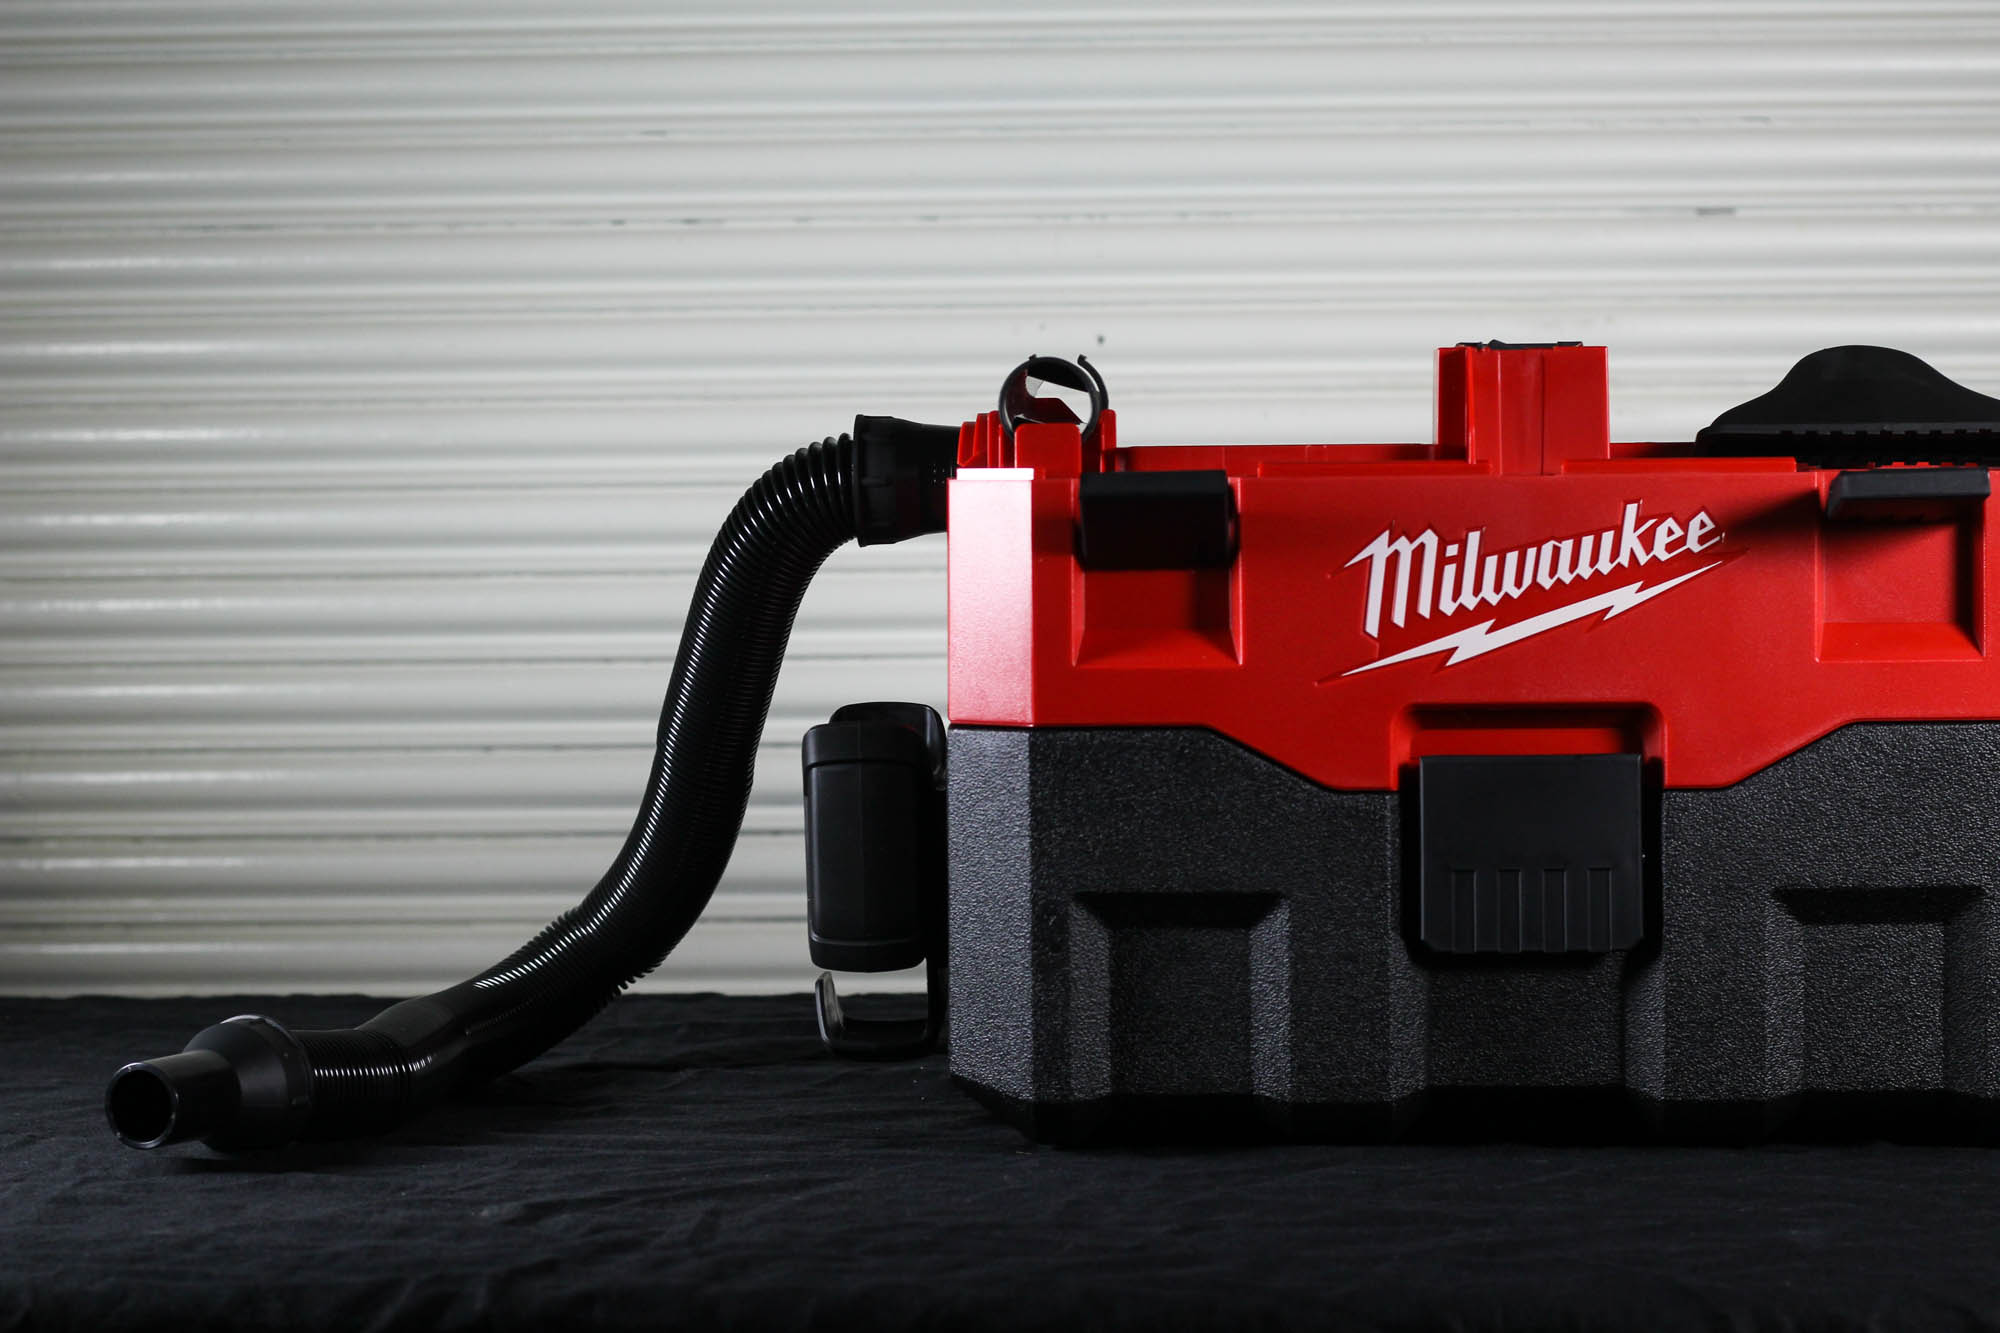 The Milwaukee Cordless Wet Dry Vacuum is great for job sites, garages, workshops, and cars